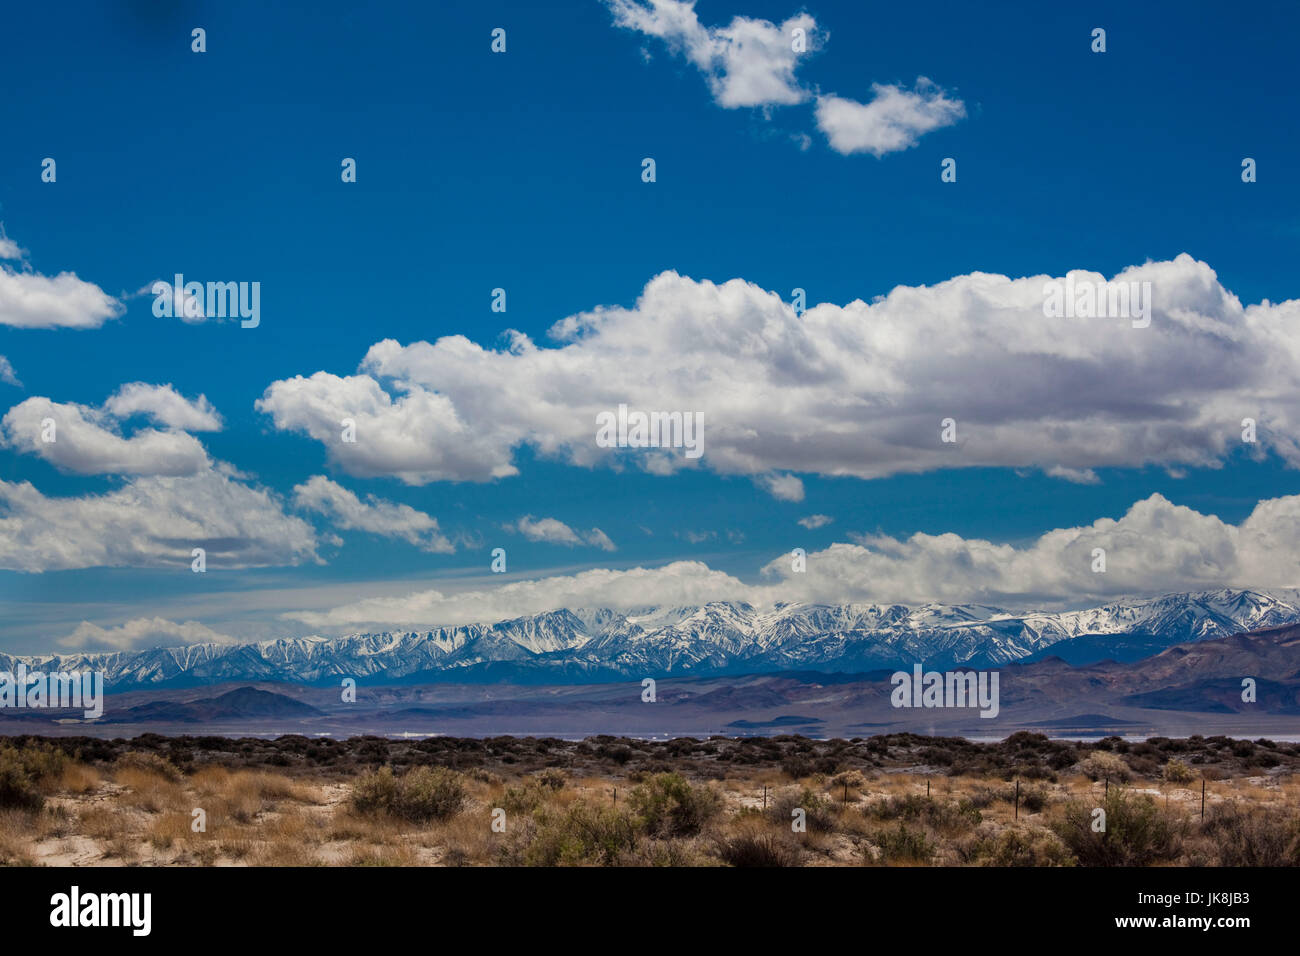 USA, Nevada, Great Basin, Tonopah, view of the Sierra Nevada Mountains from Highway 95 Stock Photo